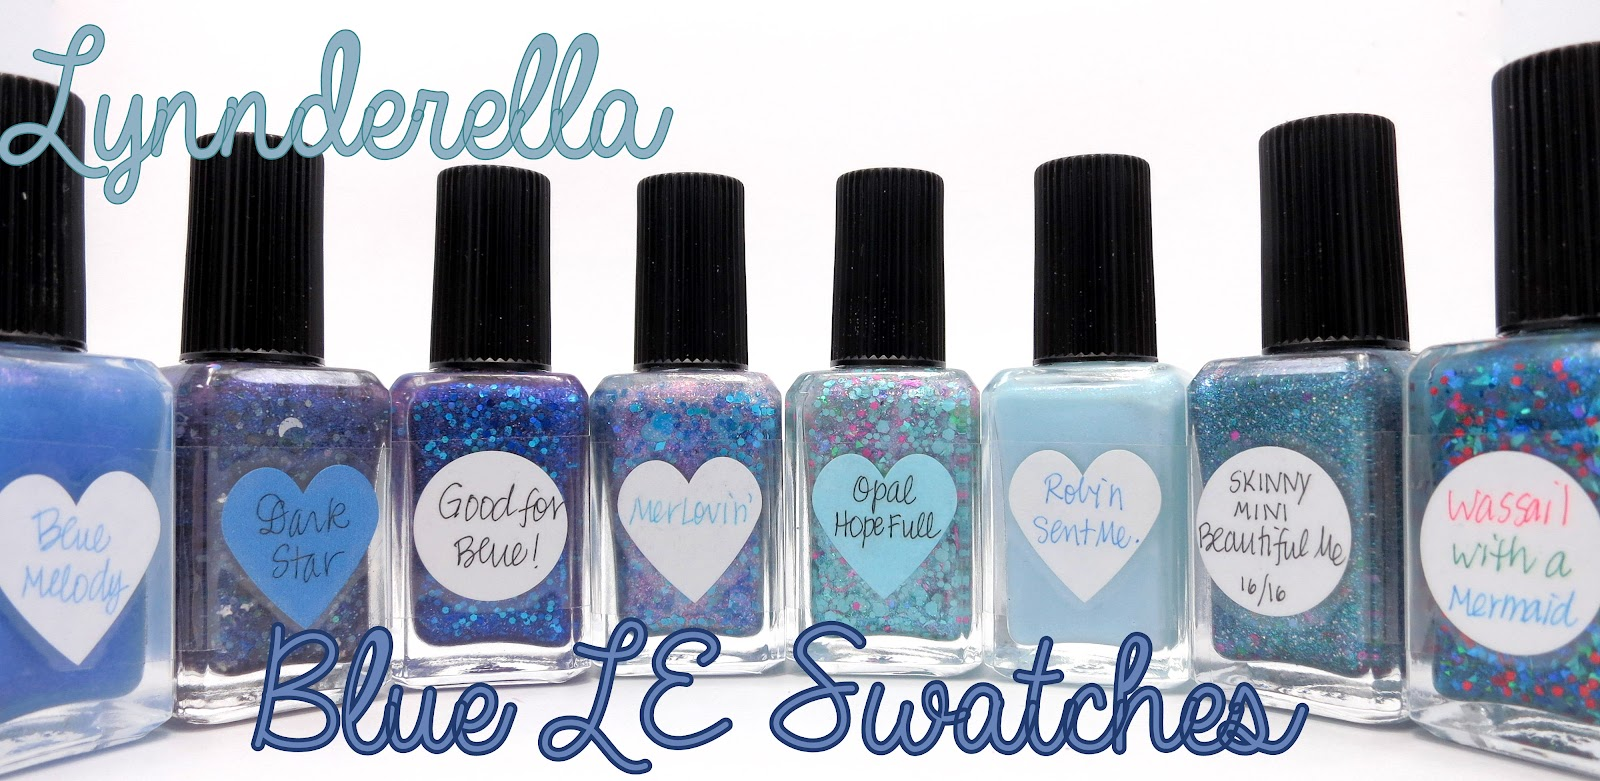 Lynnderella Blue LE Swatches